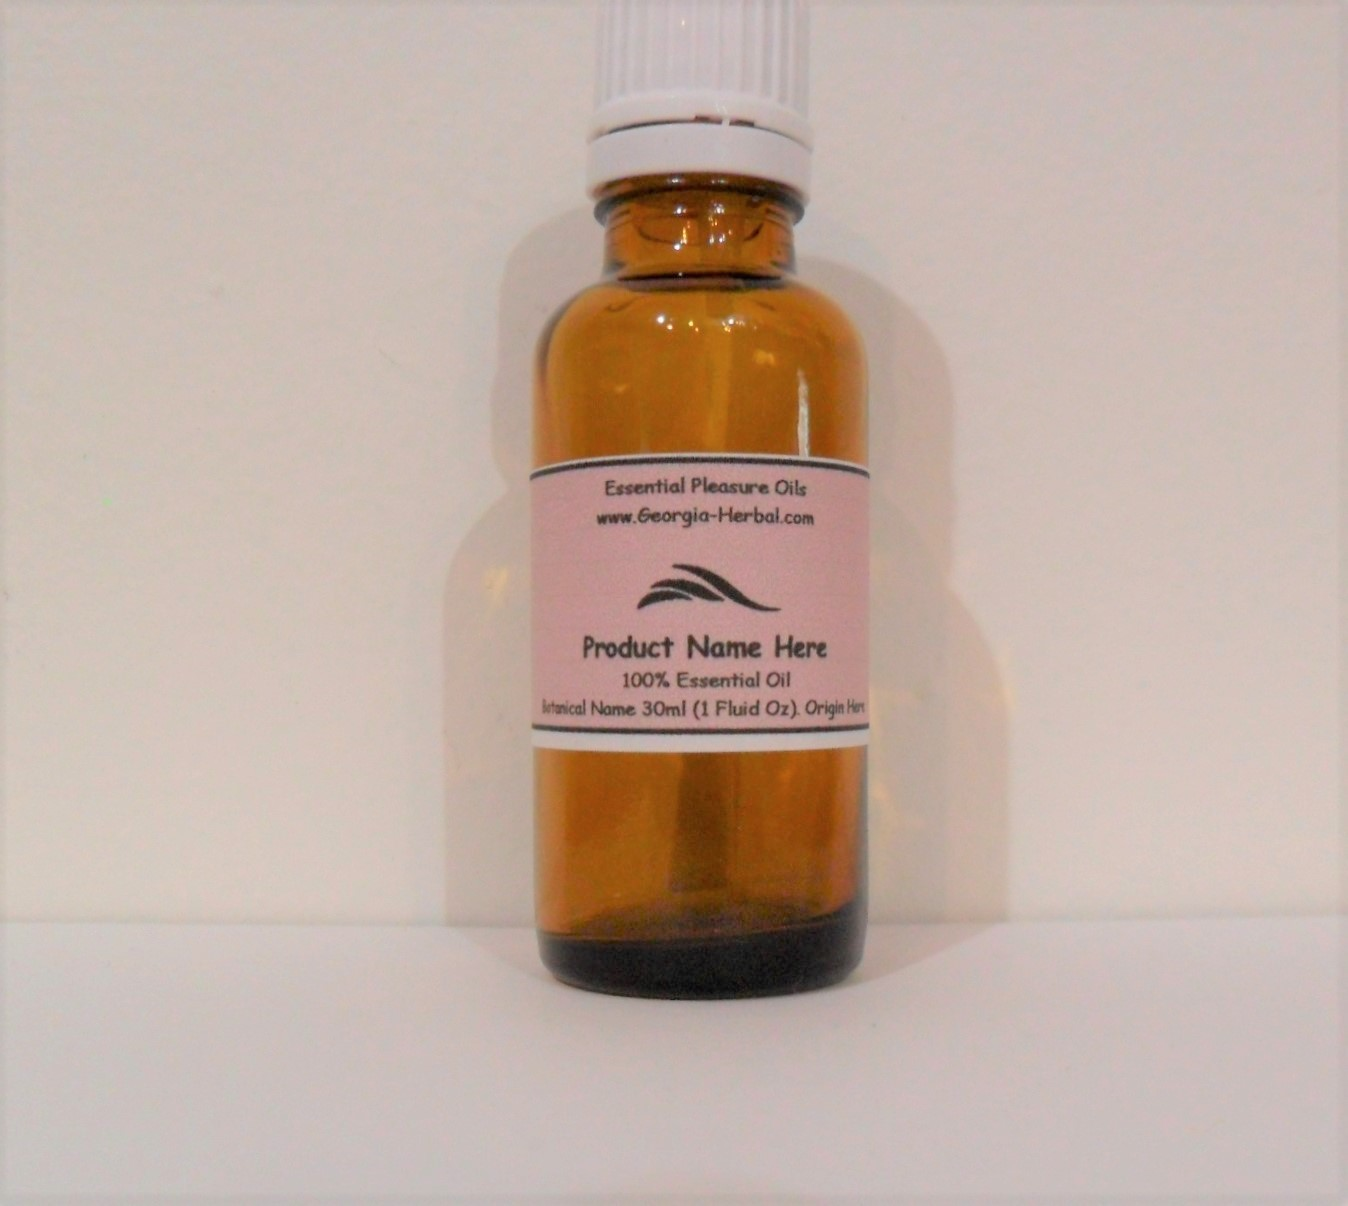 30ml product label pic  2